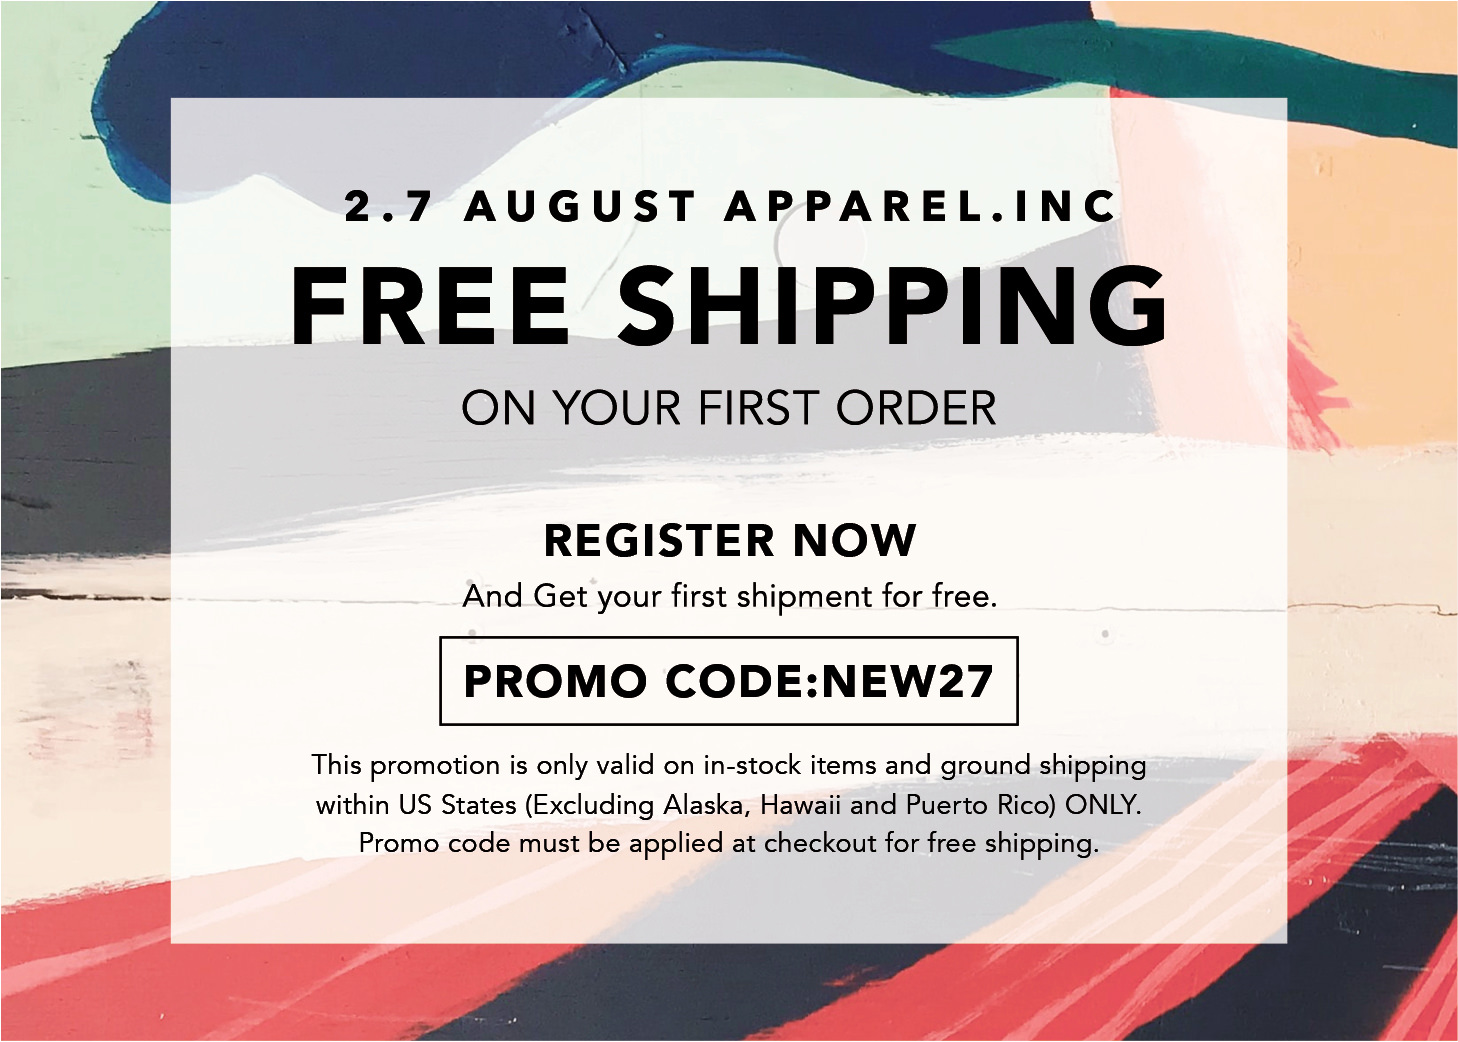 Free shipping for the first order